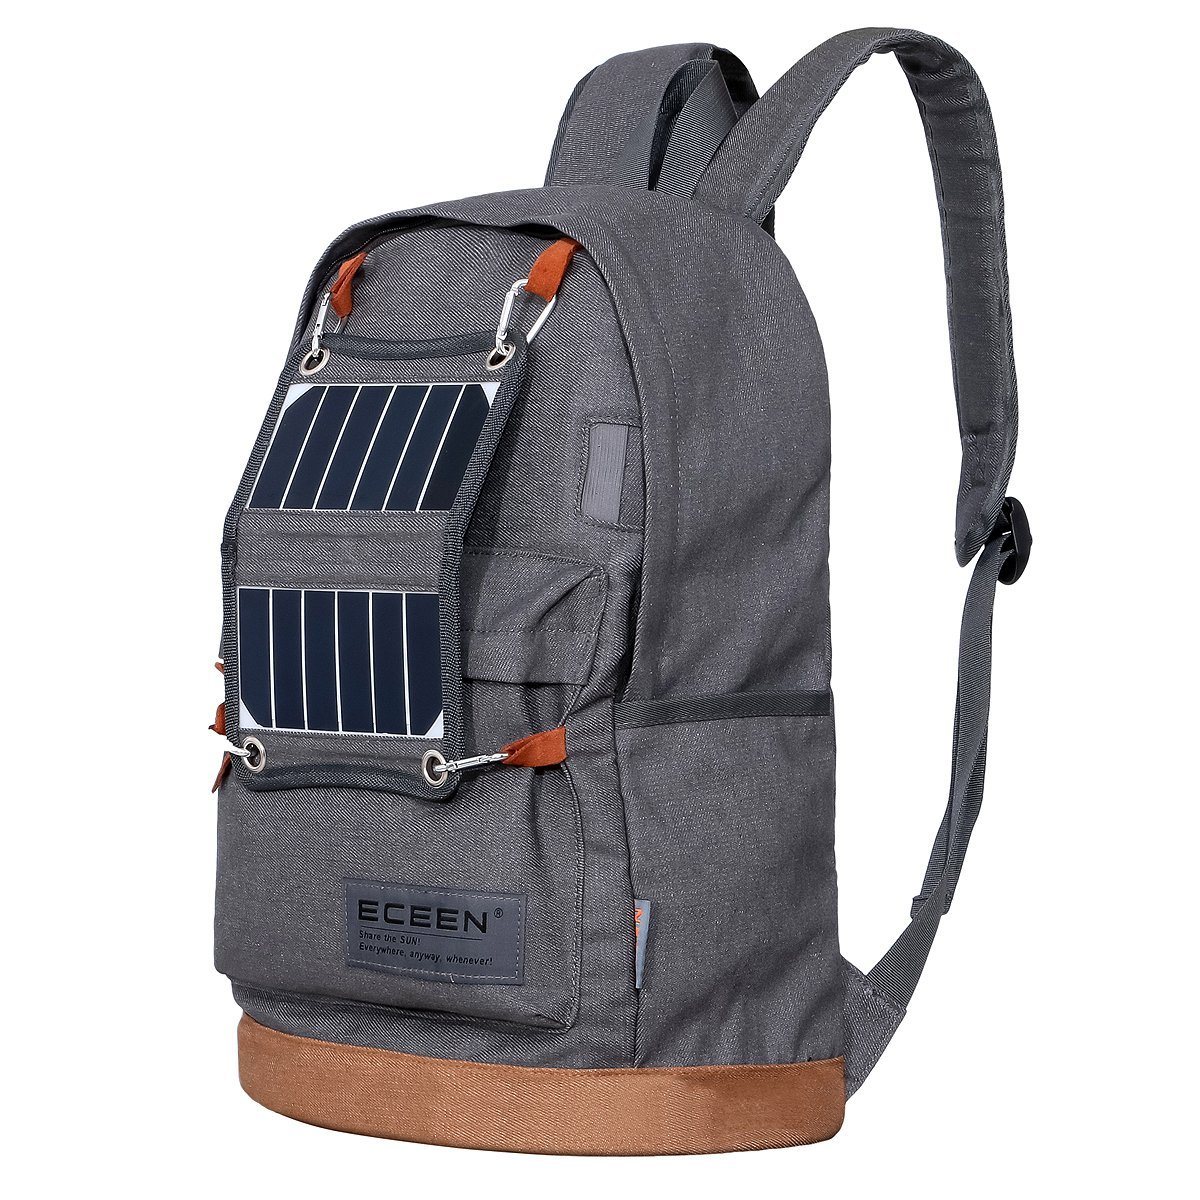 Eceen Hiking Daypack Smart Backpack Reviews Coupons And